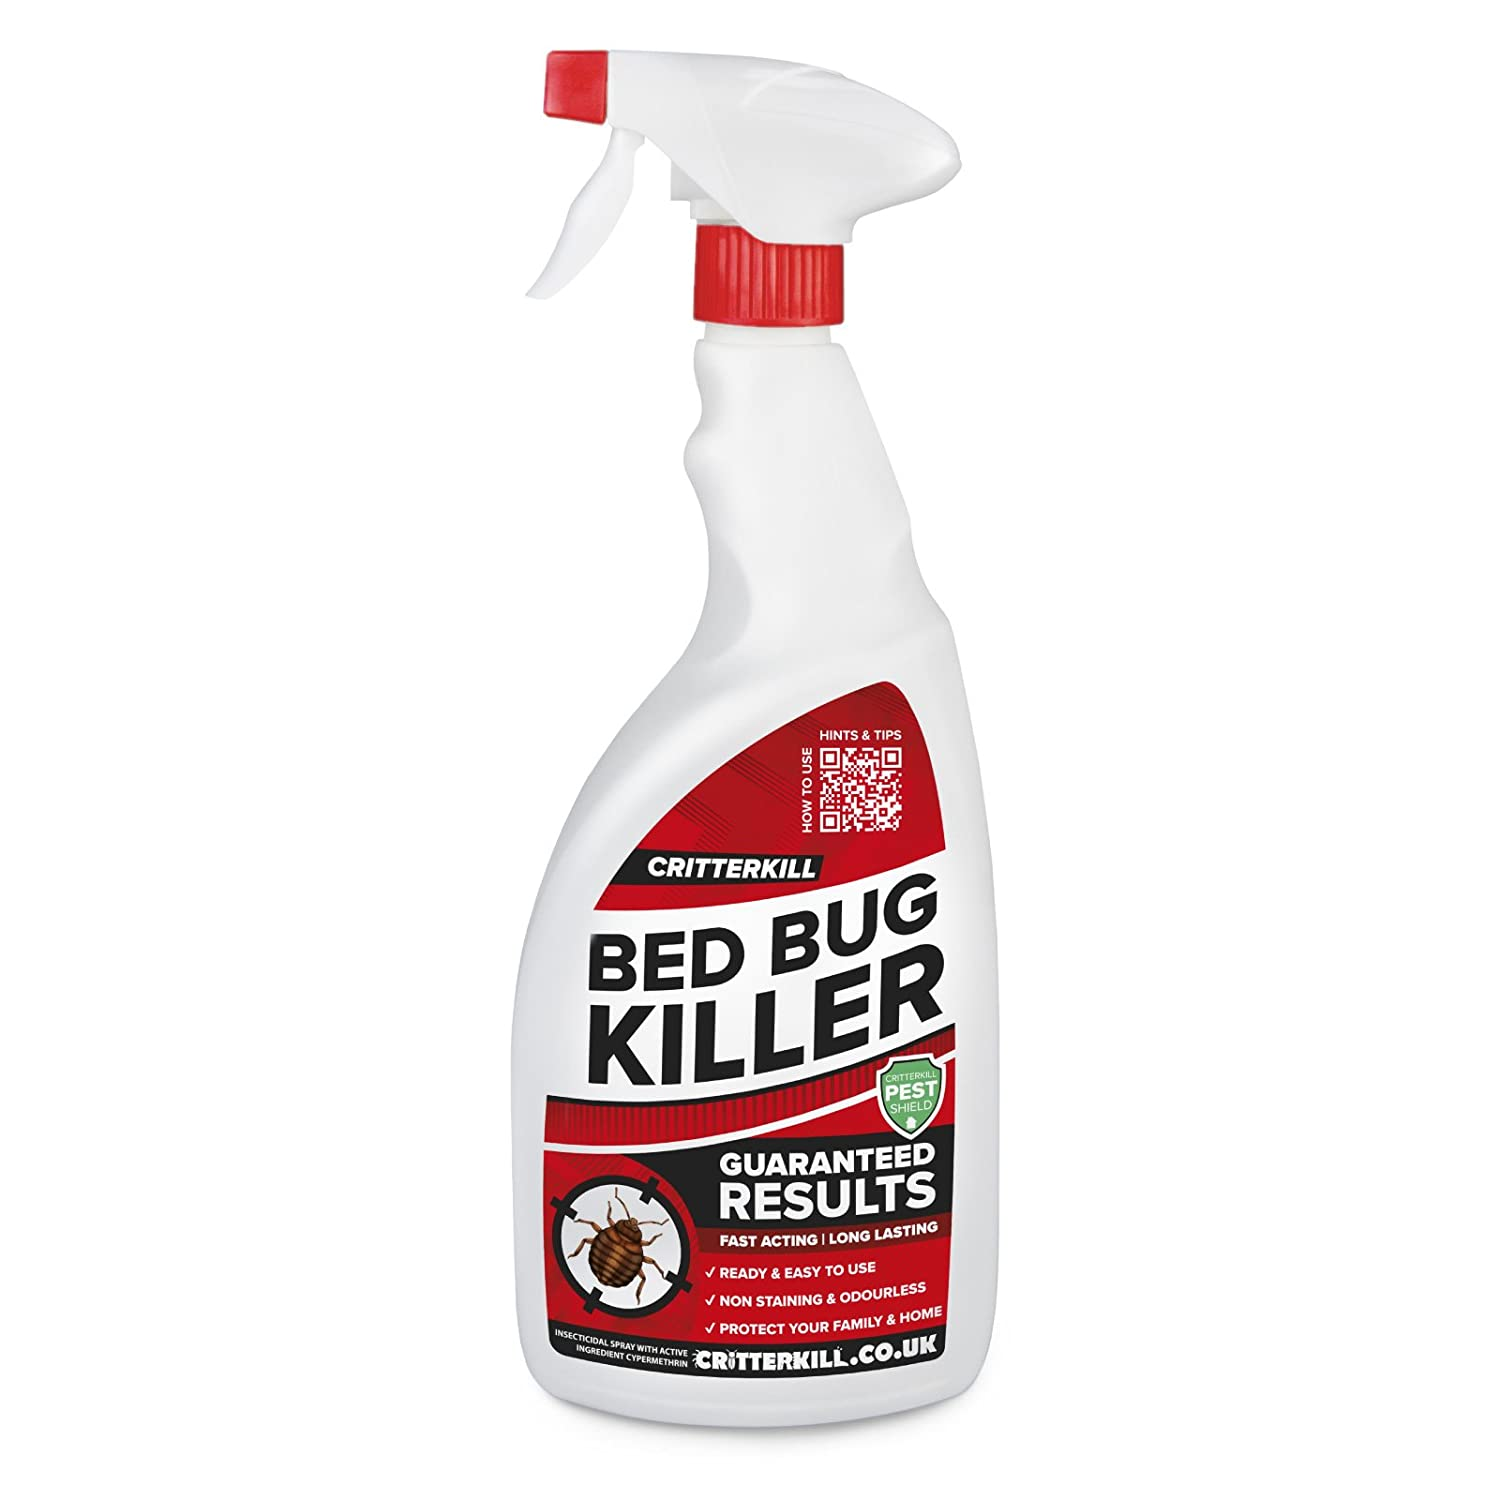 defense review killer s welcome ecodefense reviews to spray daisy bed bug eco by